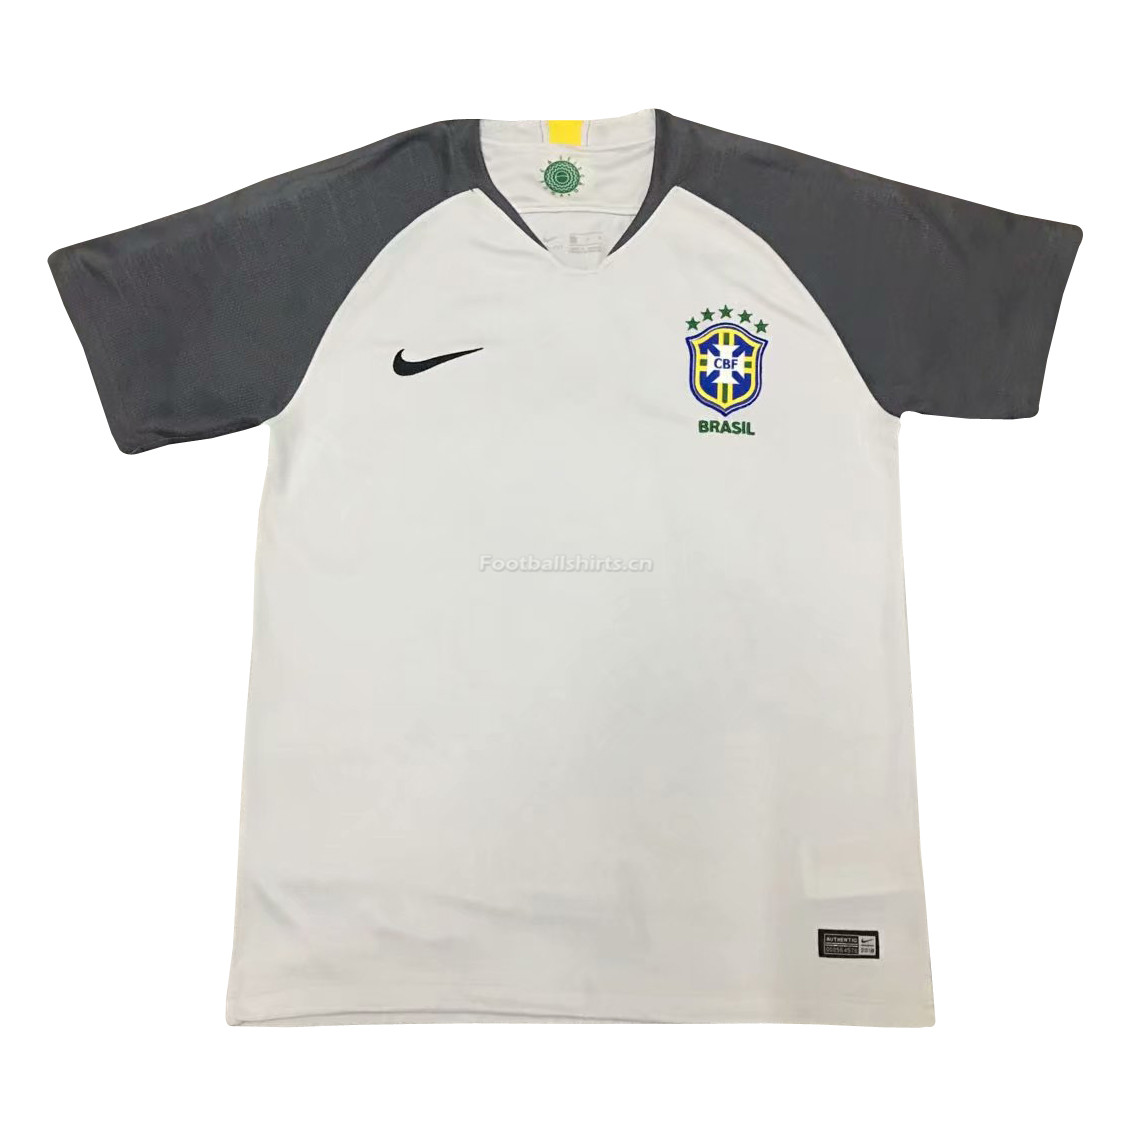 Brazil 2018 World Cup Goalkeeper Shirt Light Grey Soccer Jersey